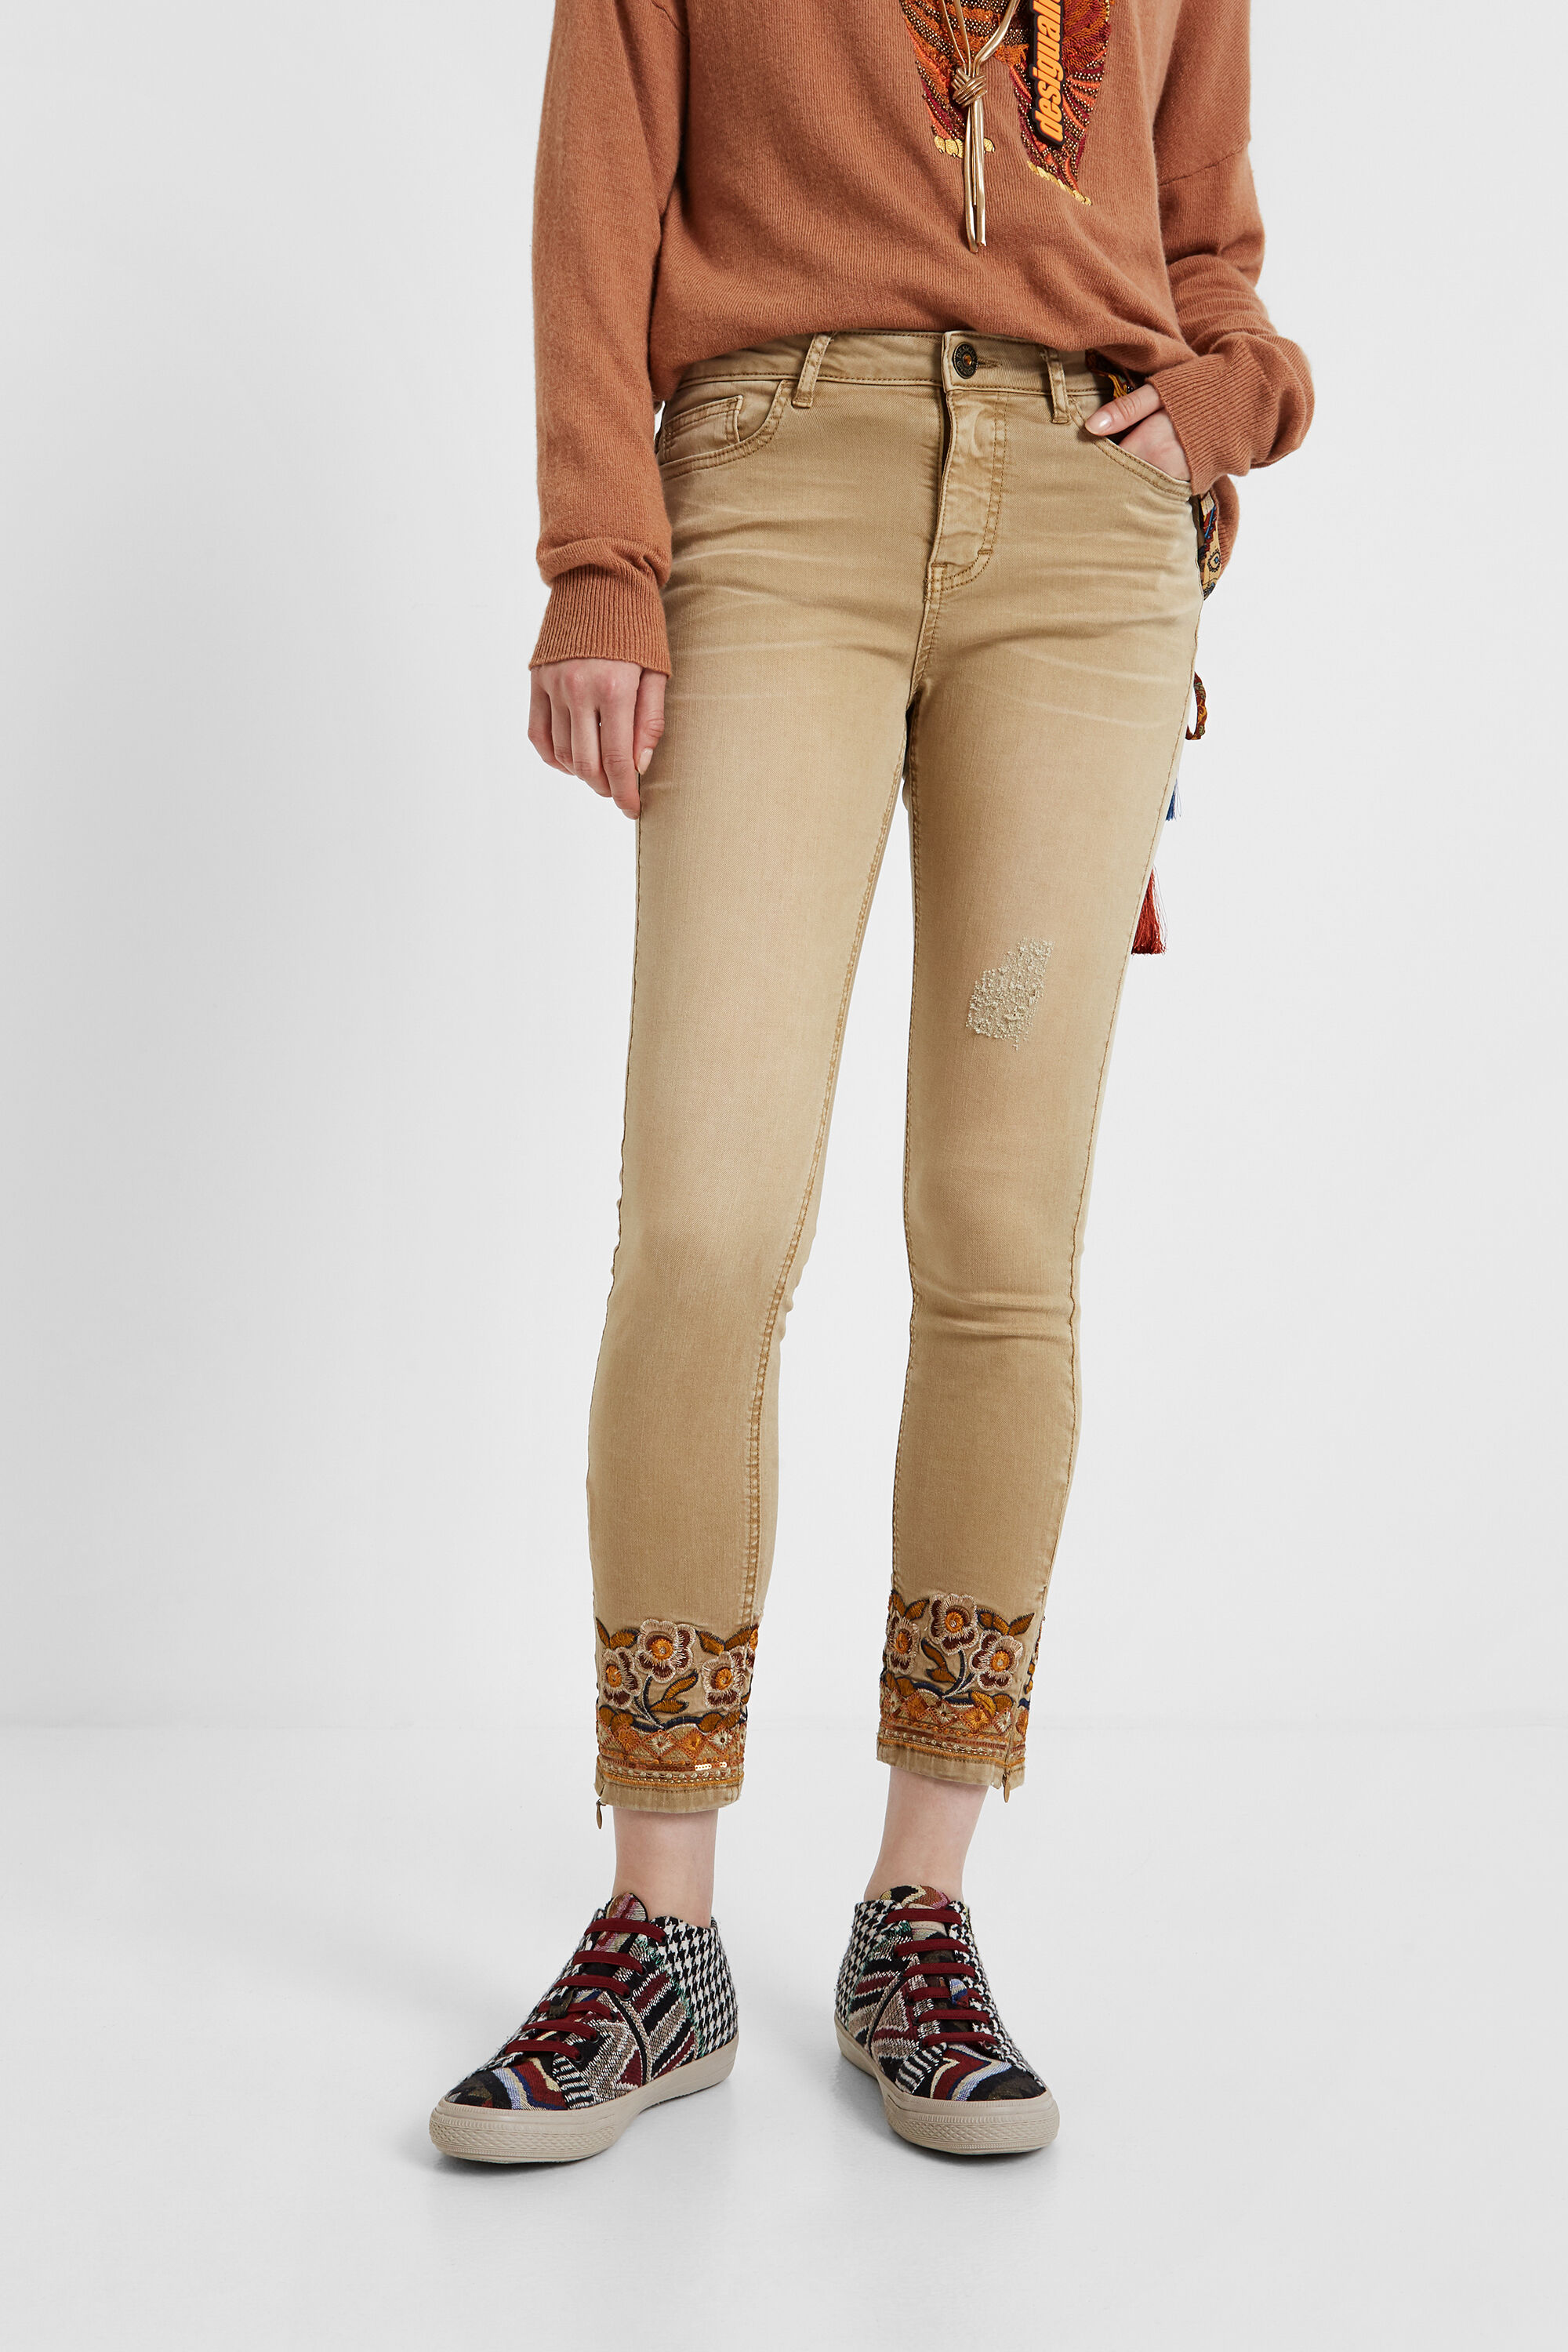 Skinny exotic jeans - WHITE - 36